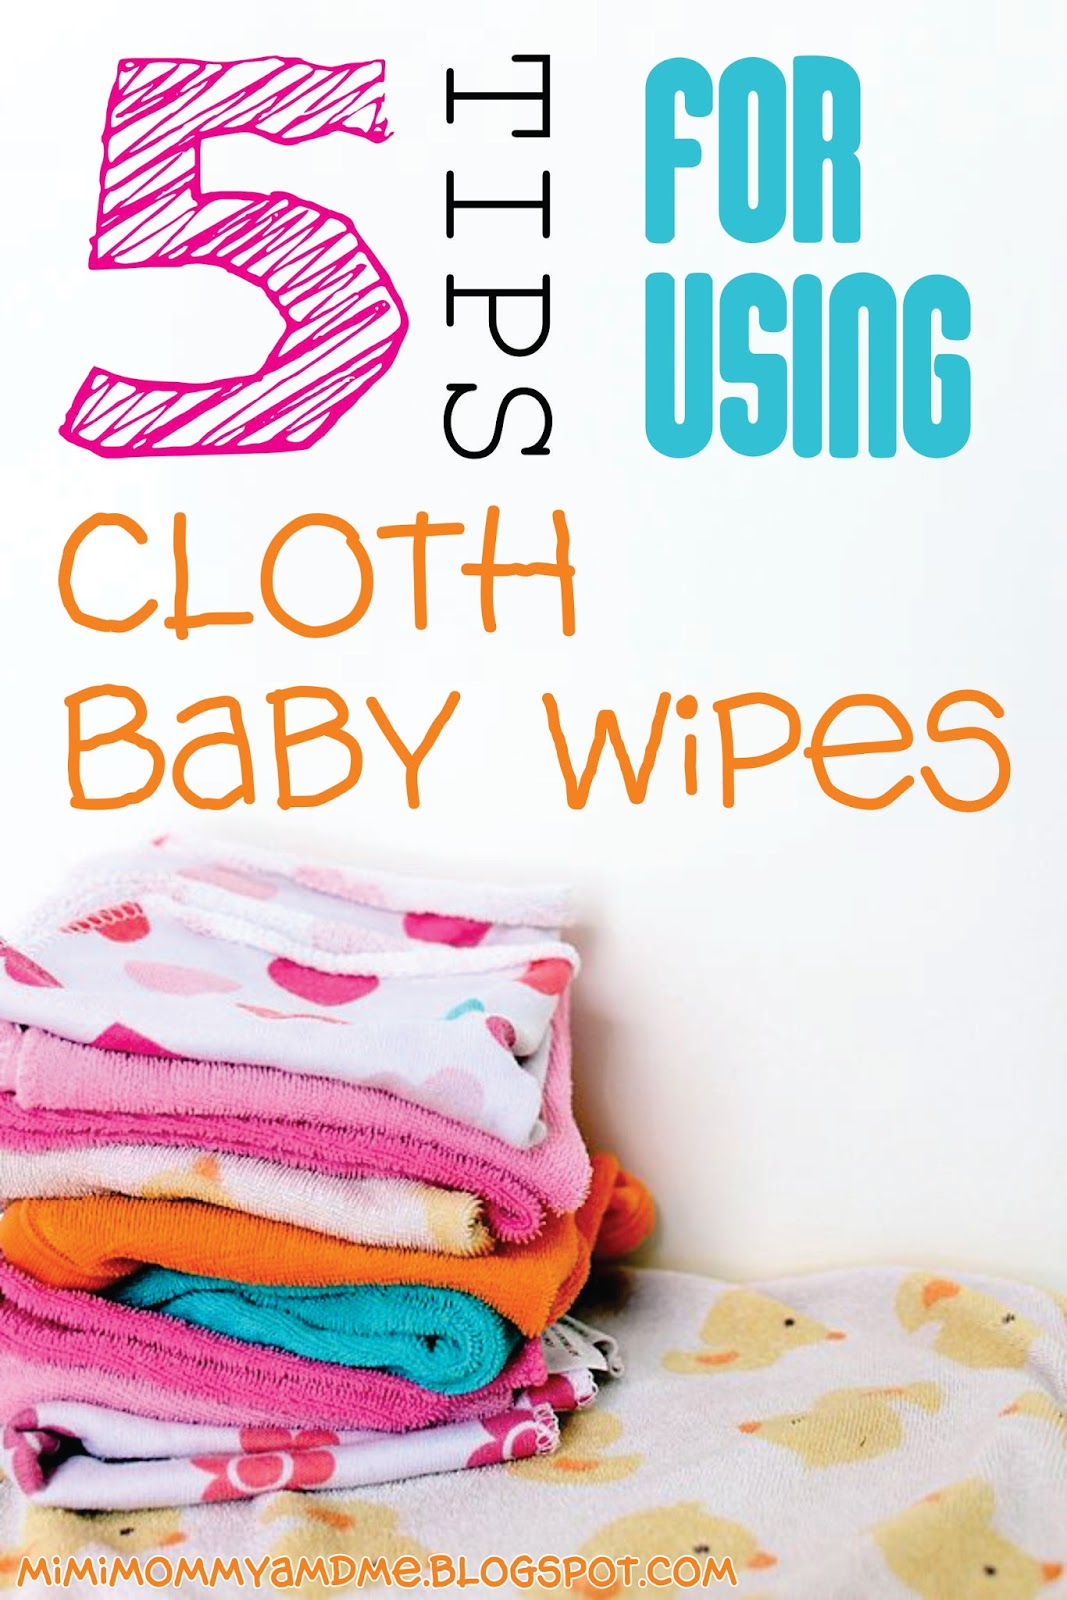 http://mimimommyandme.blogspot.com/2014/05/5-tips-for-using-cloth-baby-wipes.html #babywipes #clothwipes #clothbabywipes